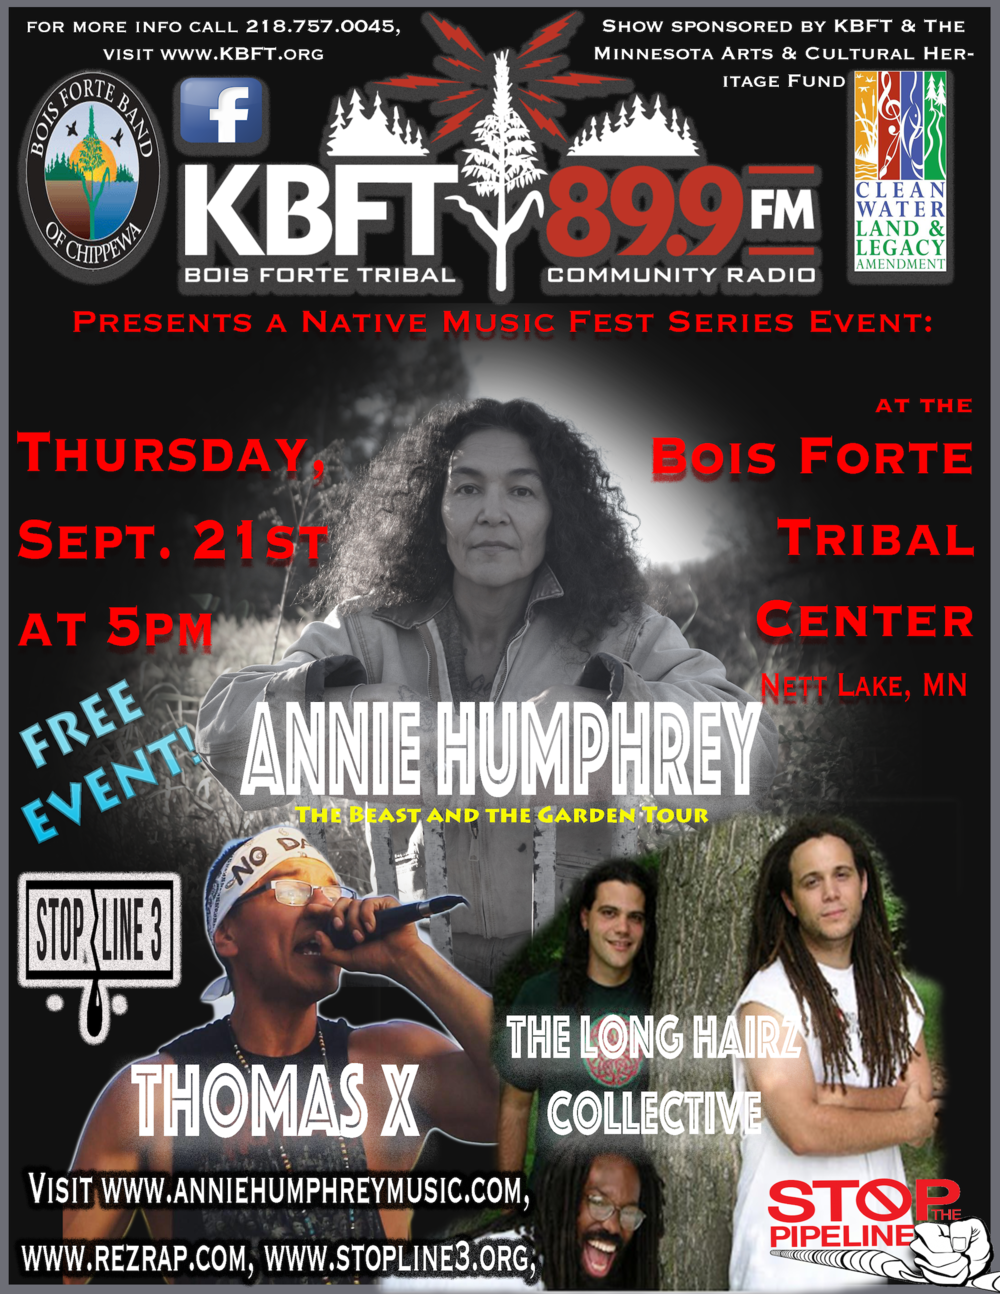 Sept. 21st - Bois Forte Tribal Center1500 Bois Forte Rd, Tower, MN 55790Free concertTime 5:00PM – 7:30PMSponsored by KBFT Bois Forte Tribal Community Radio & The Minnesota Cultural Heritage FundPerformers: Long Hair Collective, and ThomasX